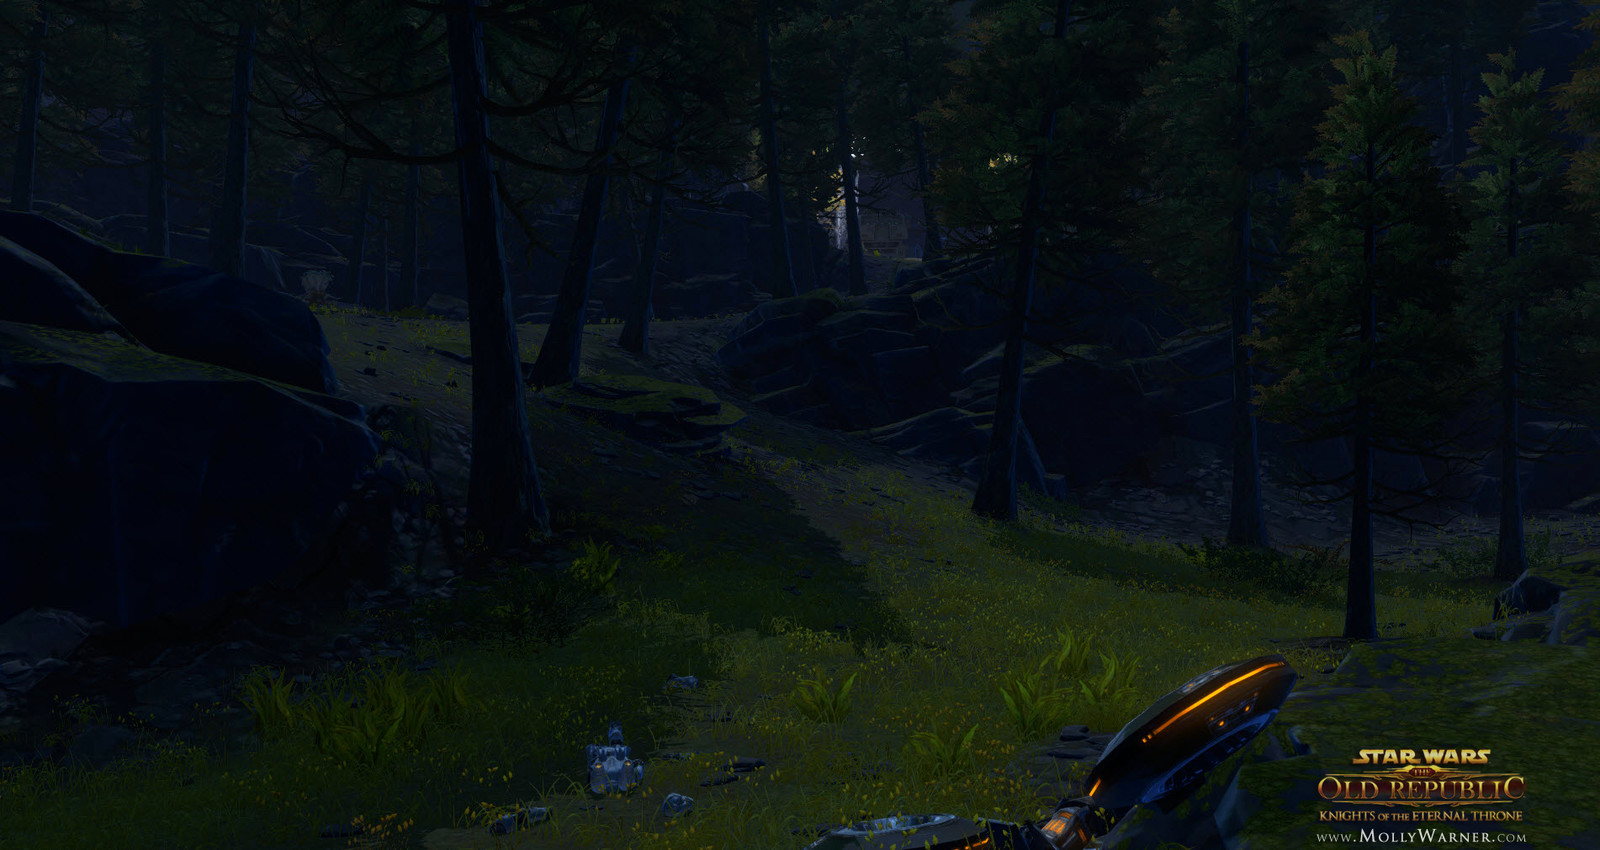 The forest around the player's ship is untouched by the Zakuulian forces